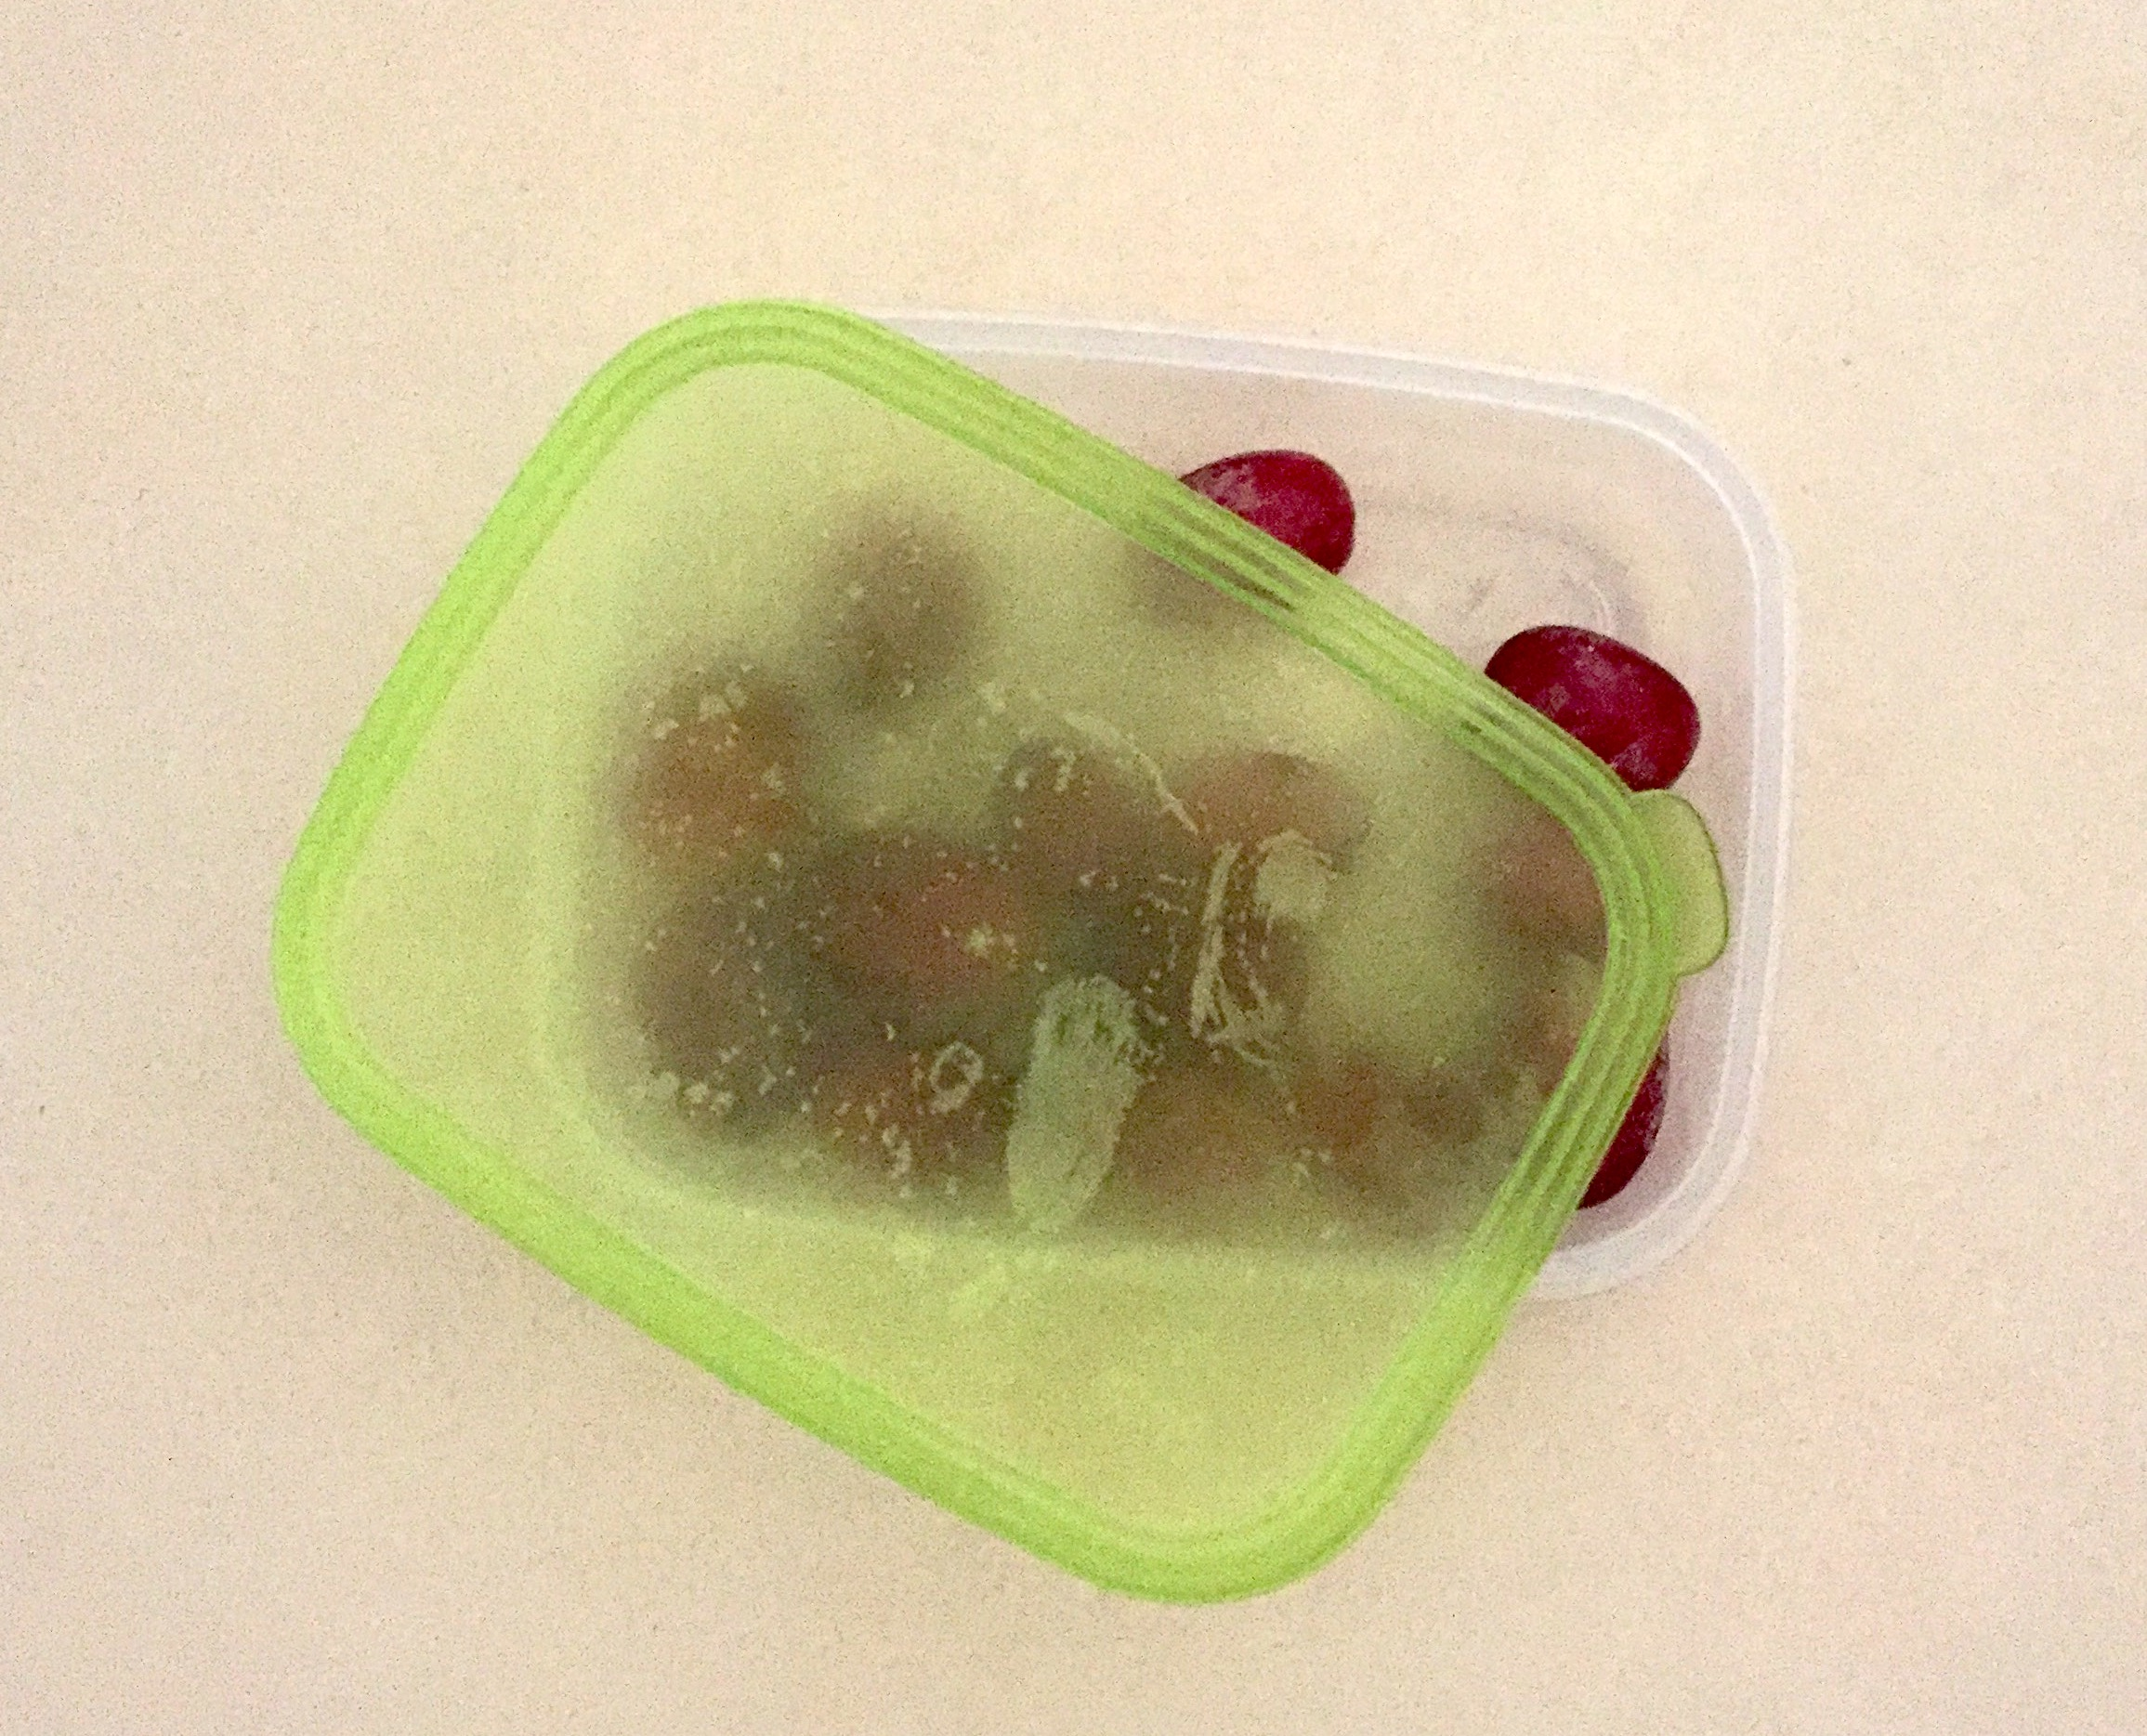 Frozen Grapes in Plastic Container